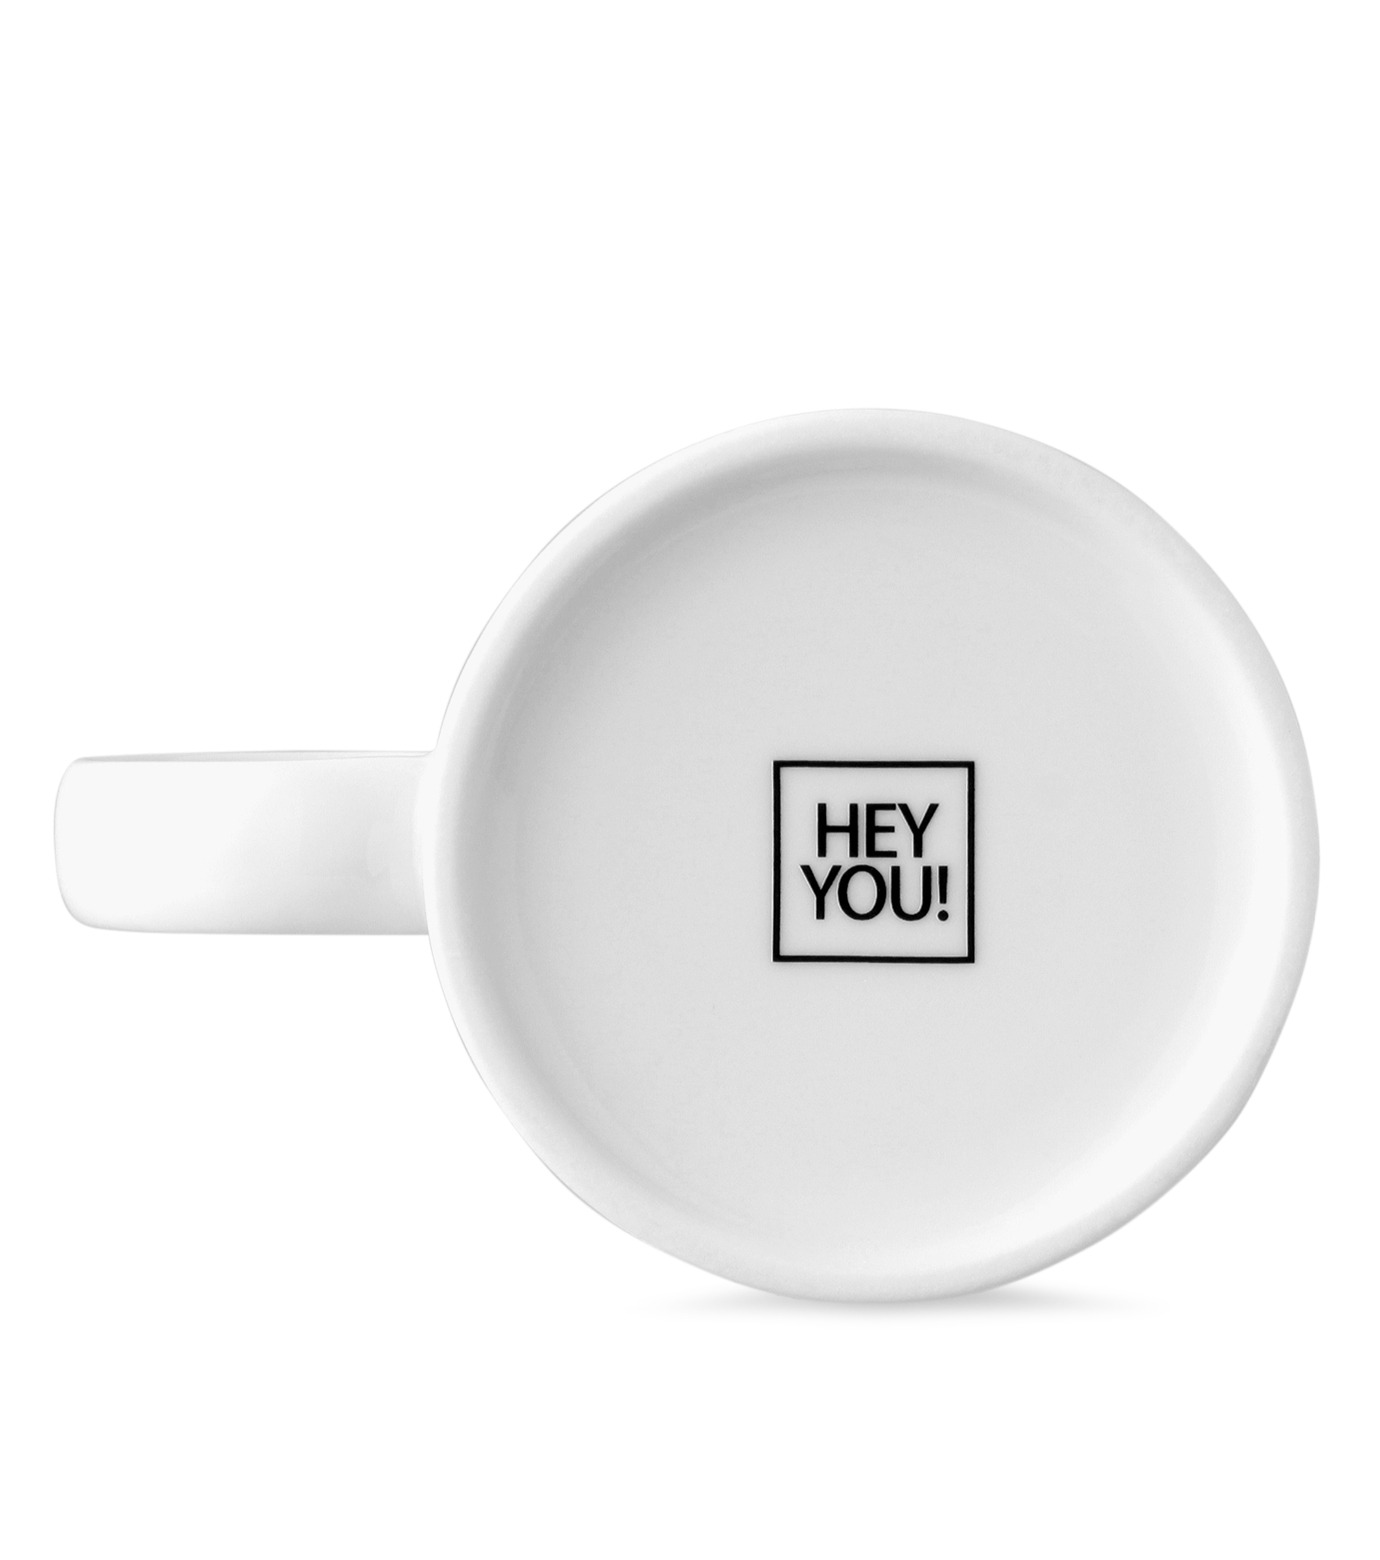 HEY YOU !(ヘイユウ)のSURF MUG CUP-WHITE(キッチン/kitchen)-SURF-MAG-4 拡大詳細画像2